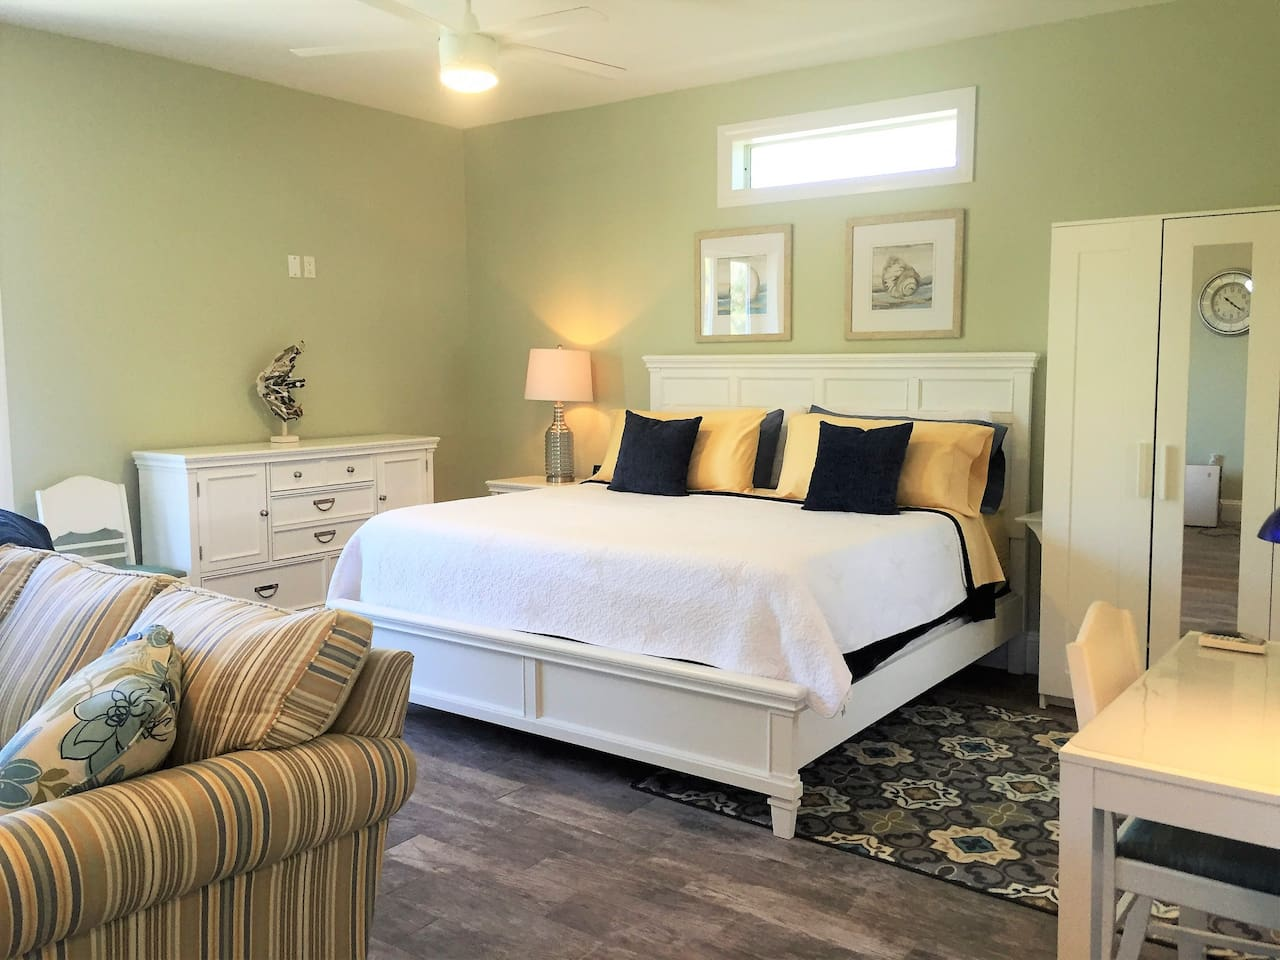 You will sleep comfortably on this brand-new, king-size, Serta Beauty Rest, pillow top mattress.